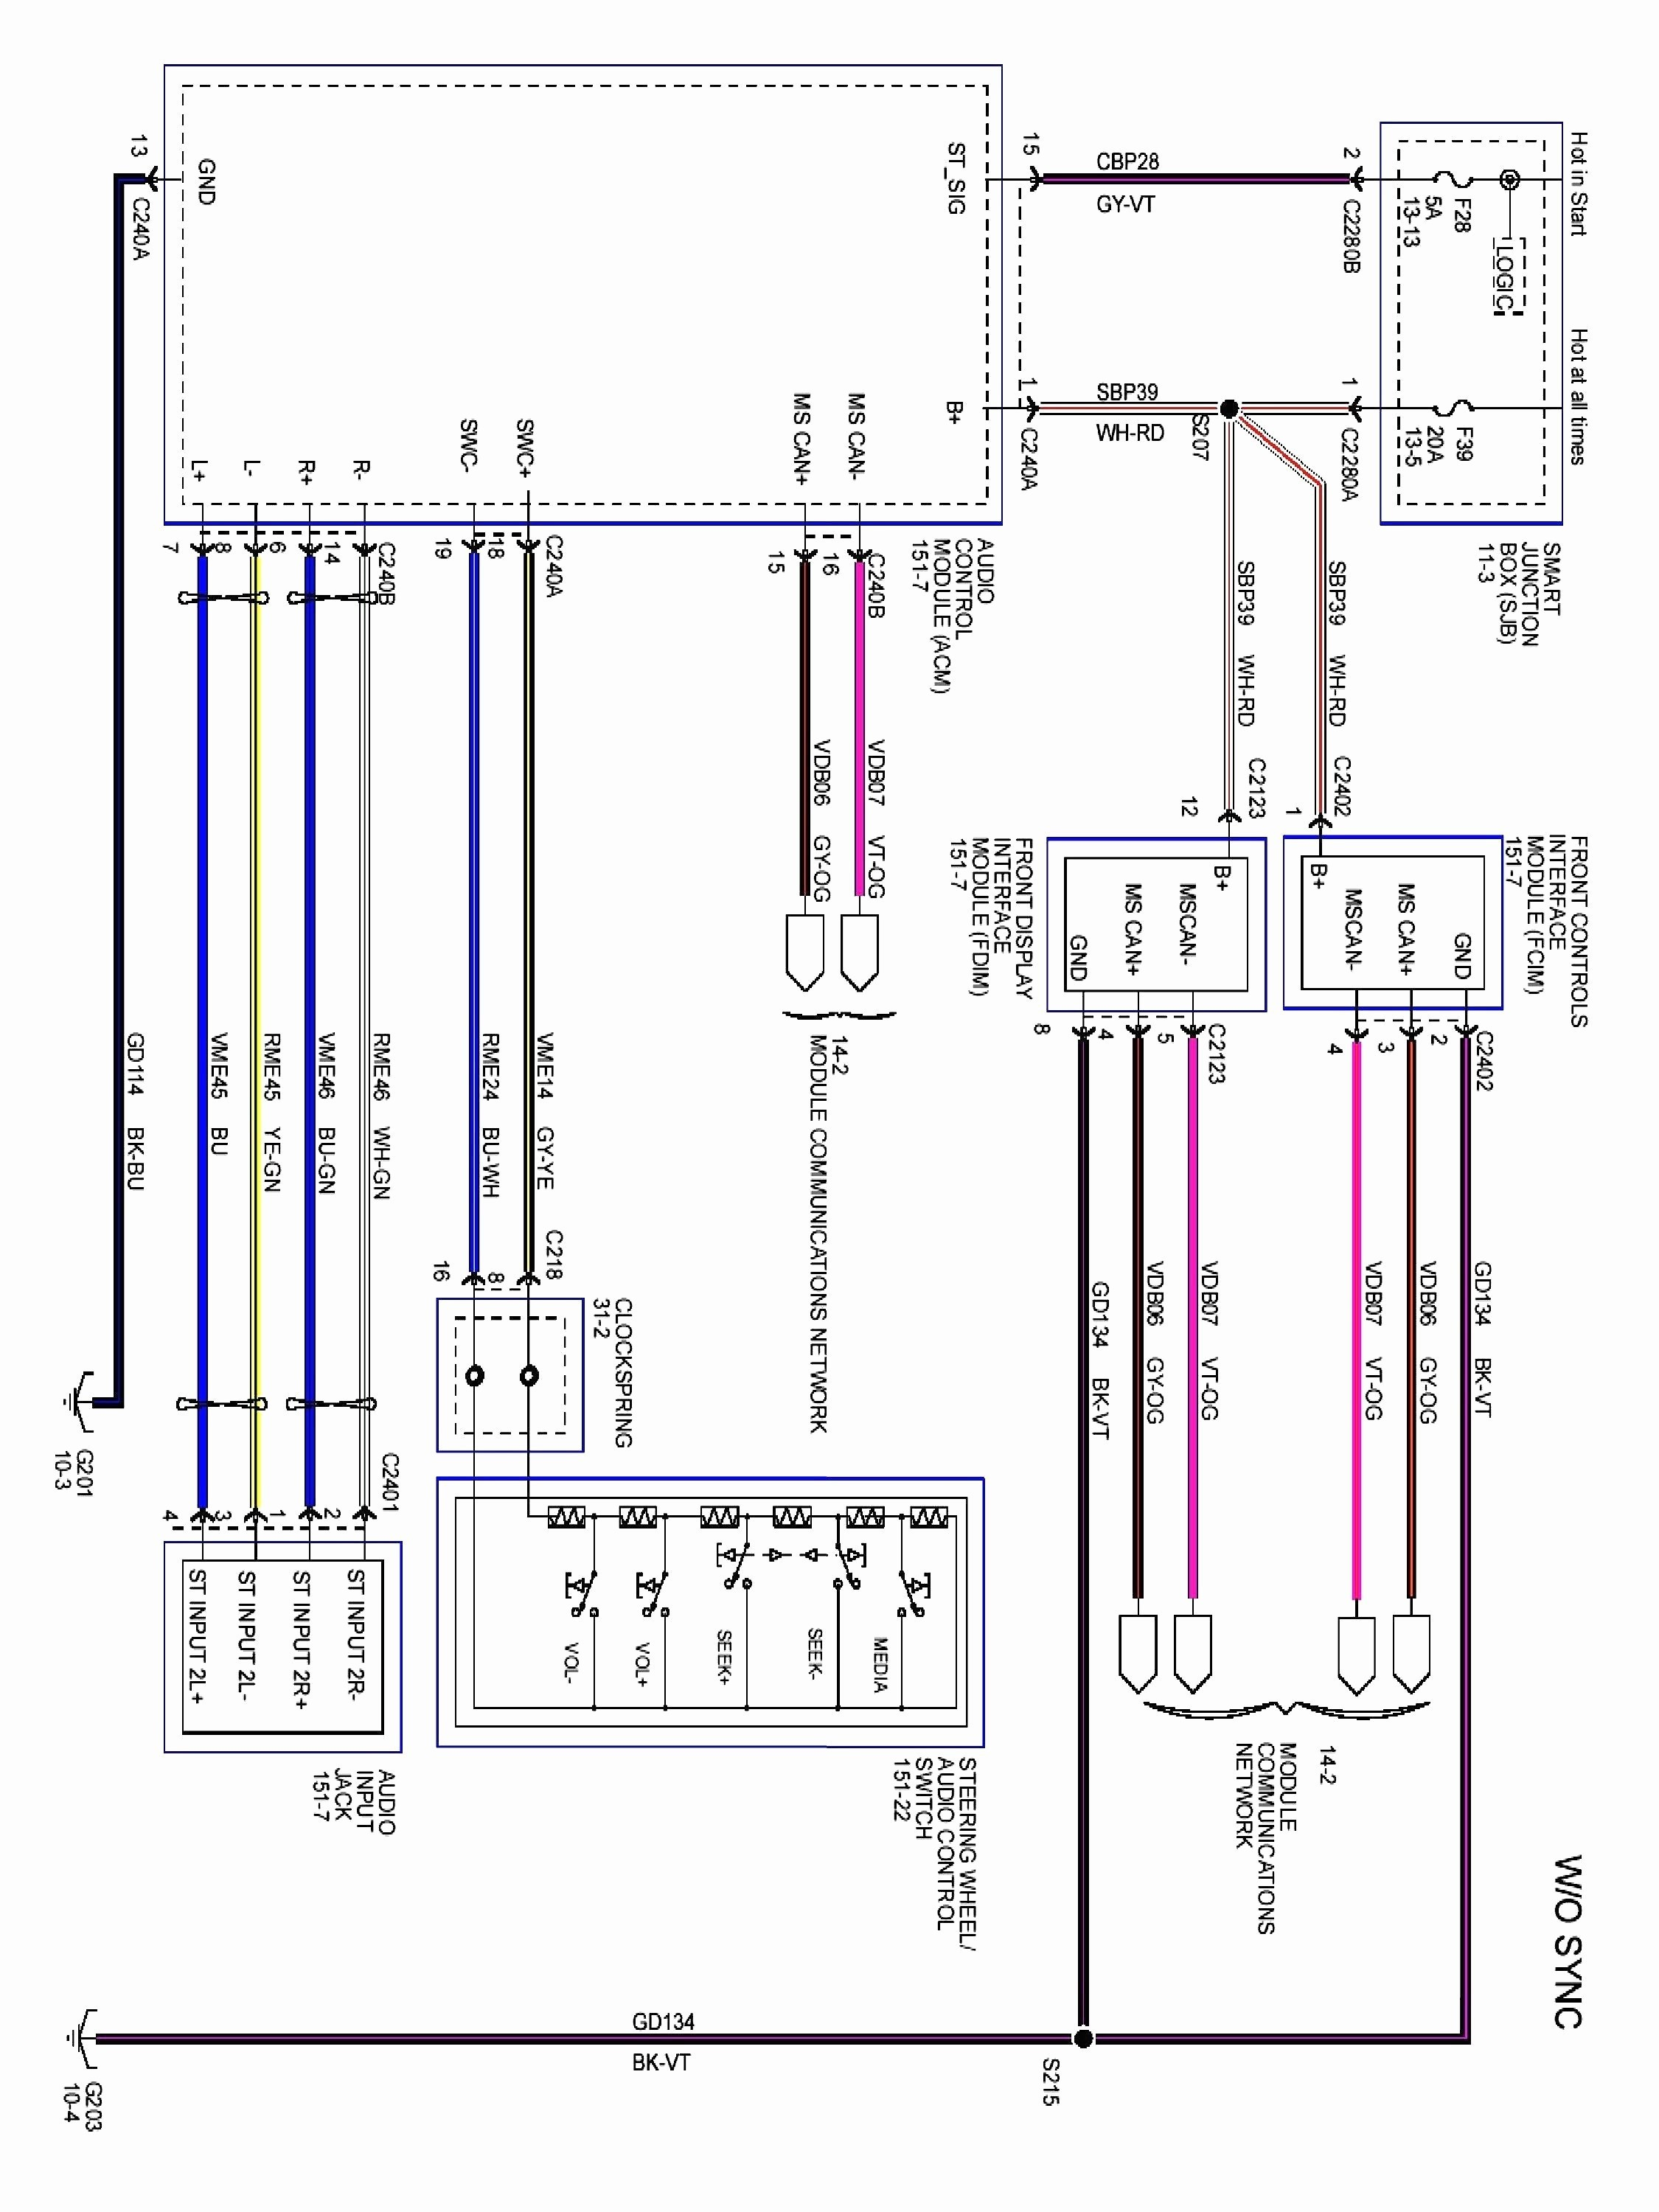 Car Labeled Diagram Wiring Diagram In A Car Valid Wiring Diagram for Amplifier Car Of Car Labeled Diagram